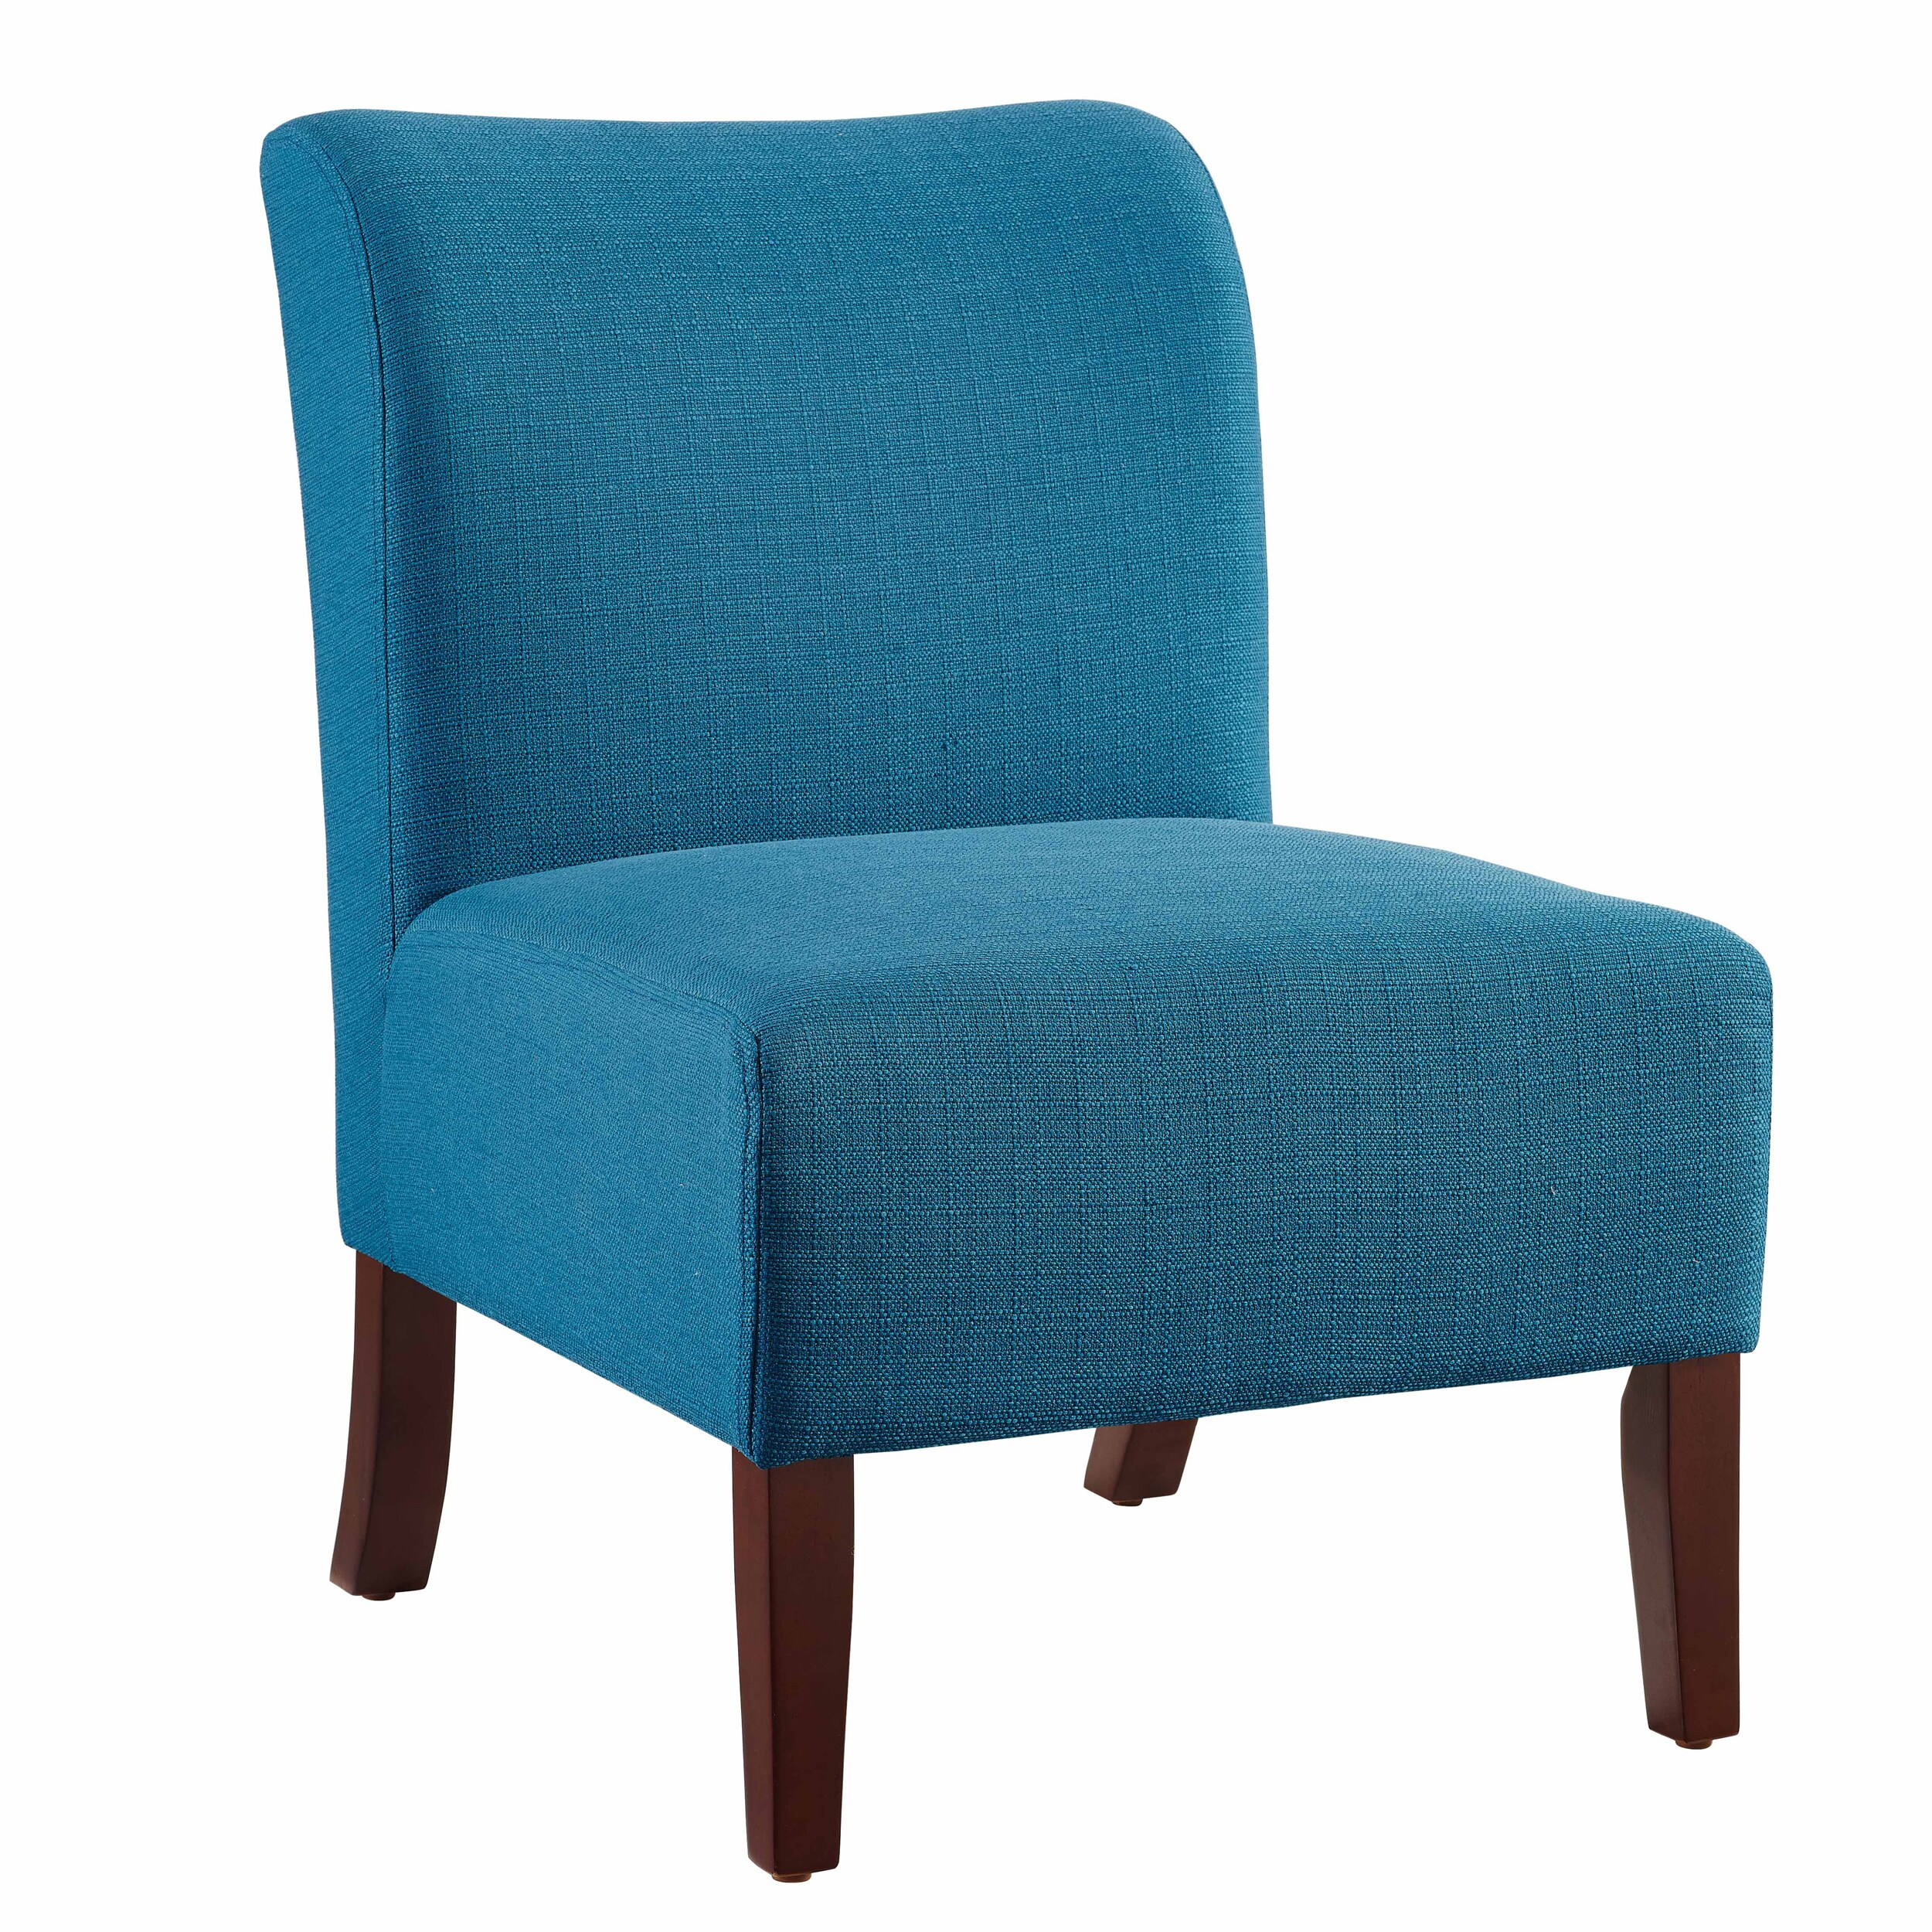 Blue Slipper Chair Jules Curved Back Blue Slipper Chair